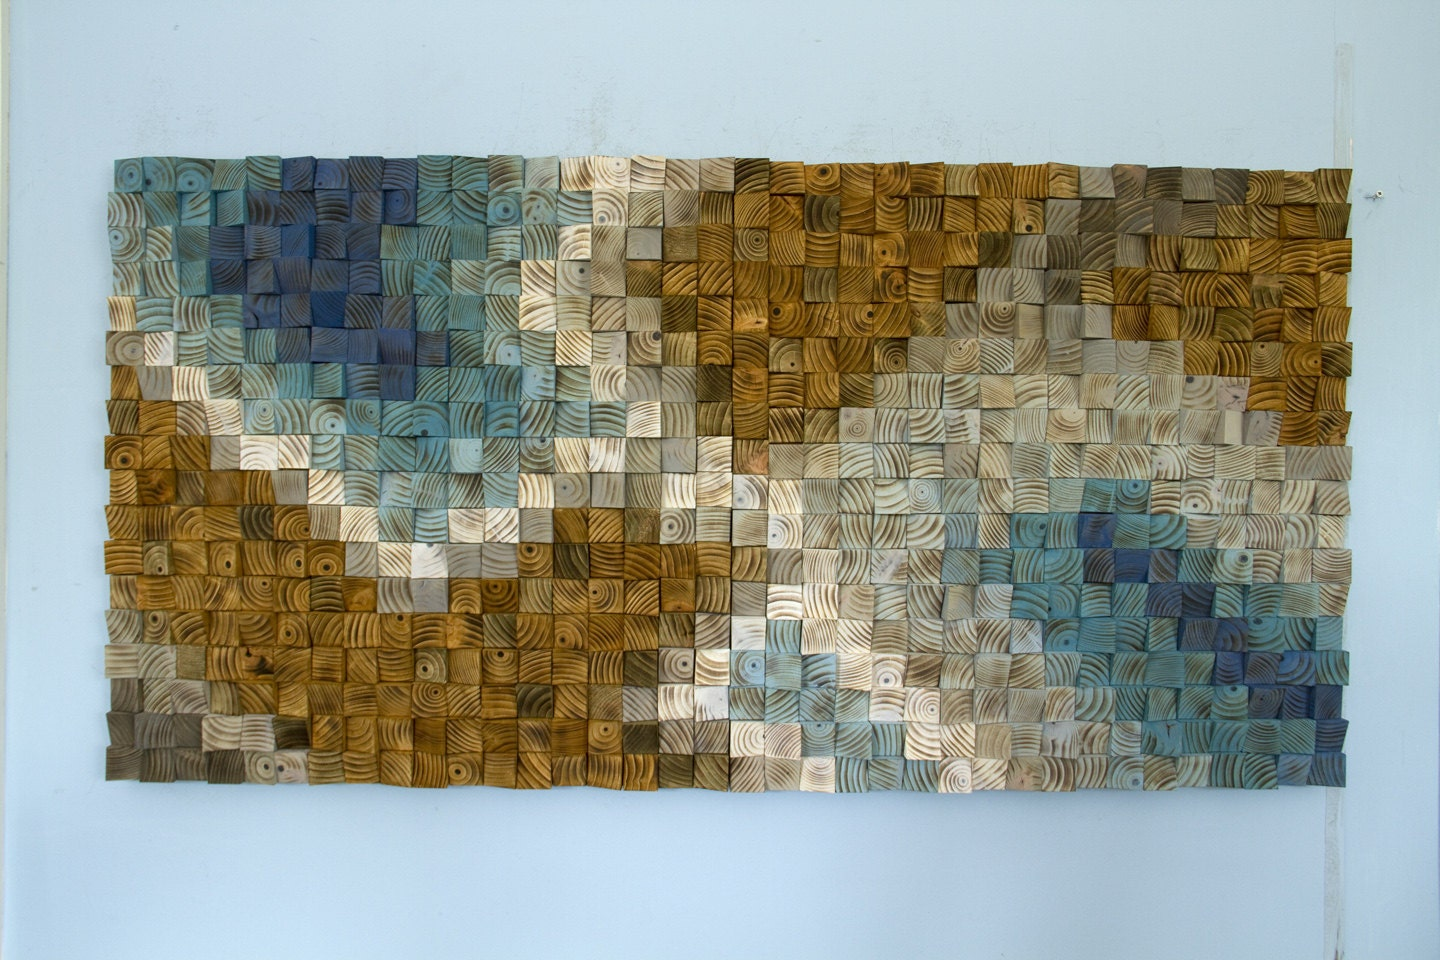 Wooden Wall Art For Sale Adorable Large Wood Wall Art Wood Mosaic Geometric Art Large Art Inspiration Design